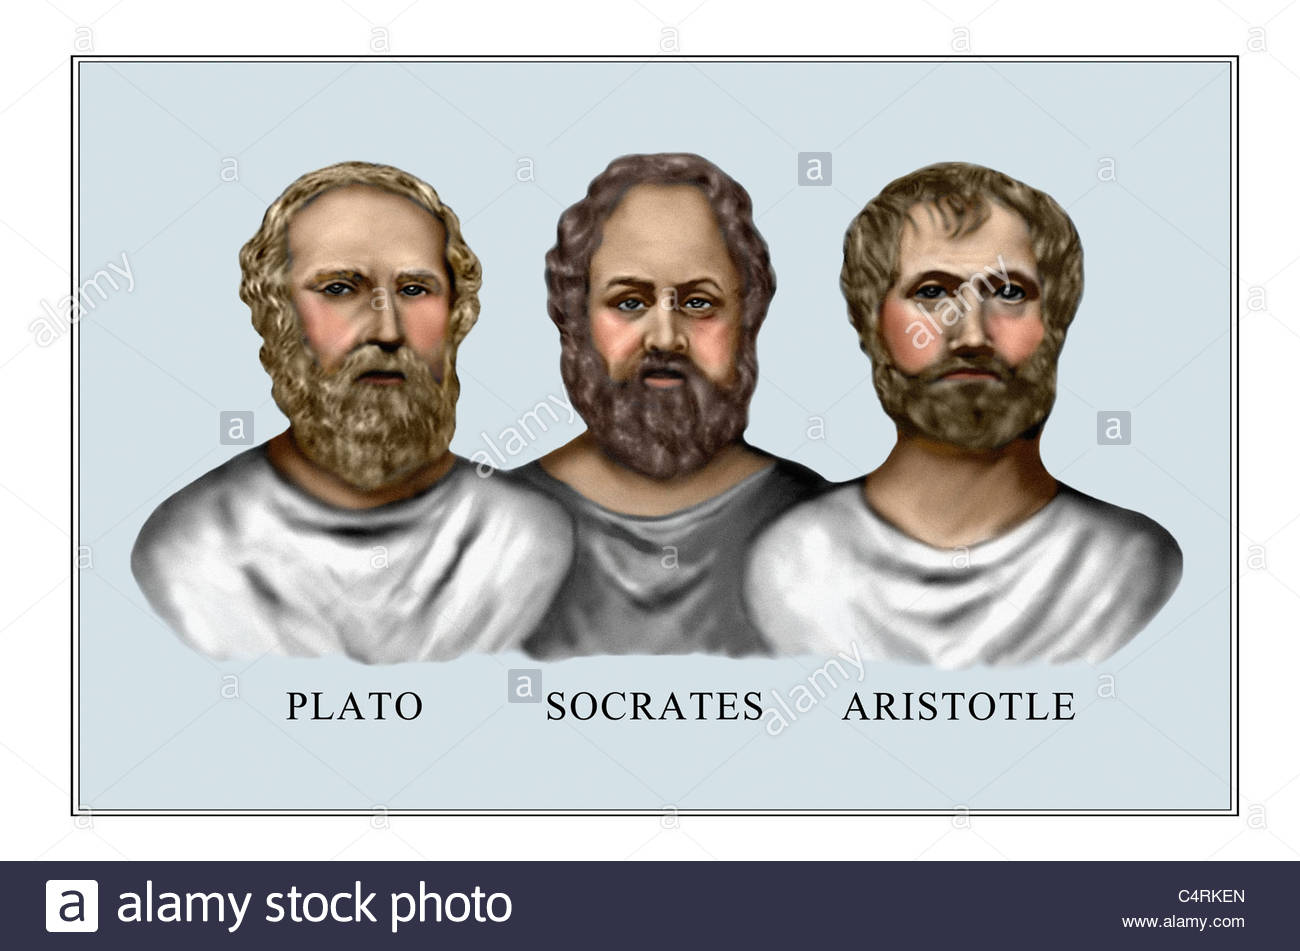 socrates plato and aristotle Plato and aristotle similarities and differences share contents 1 plato vs aristotle: plato vs aristotle: compared philosophies justice consists in rendering to each his own via plato, socrates rejects this definition in the first book of the republic: justice.